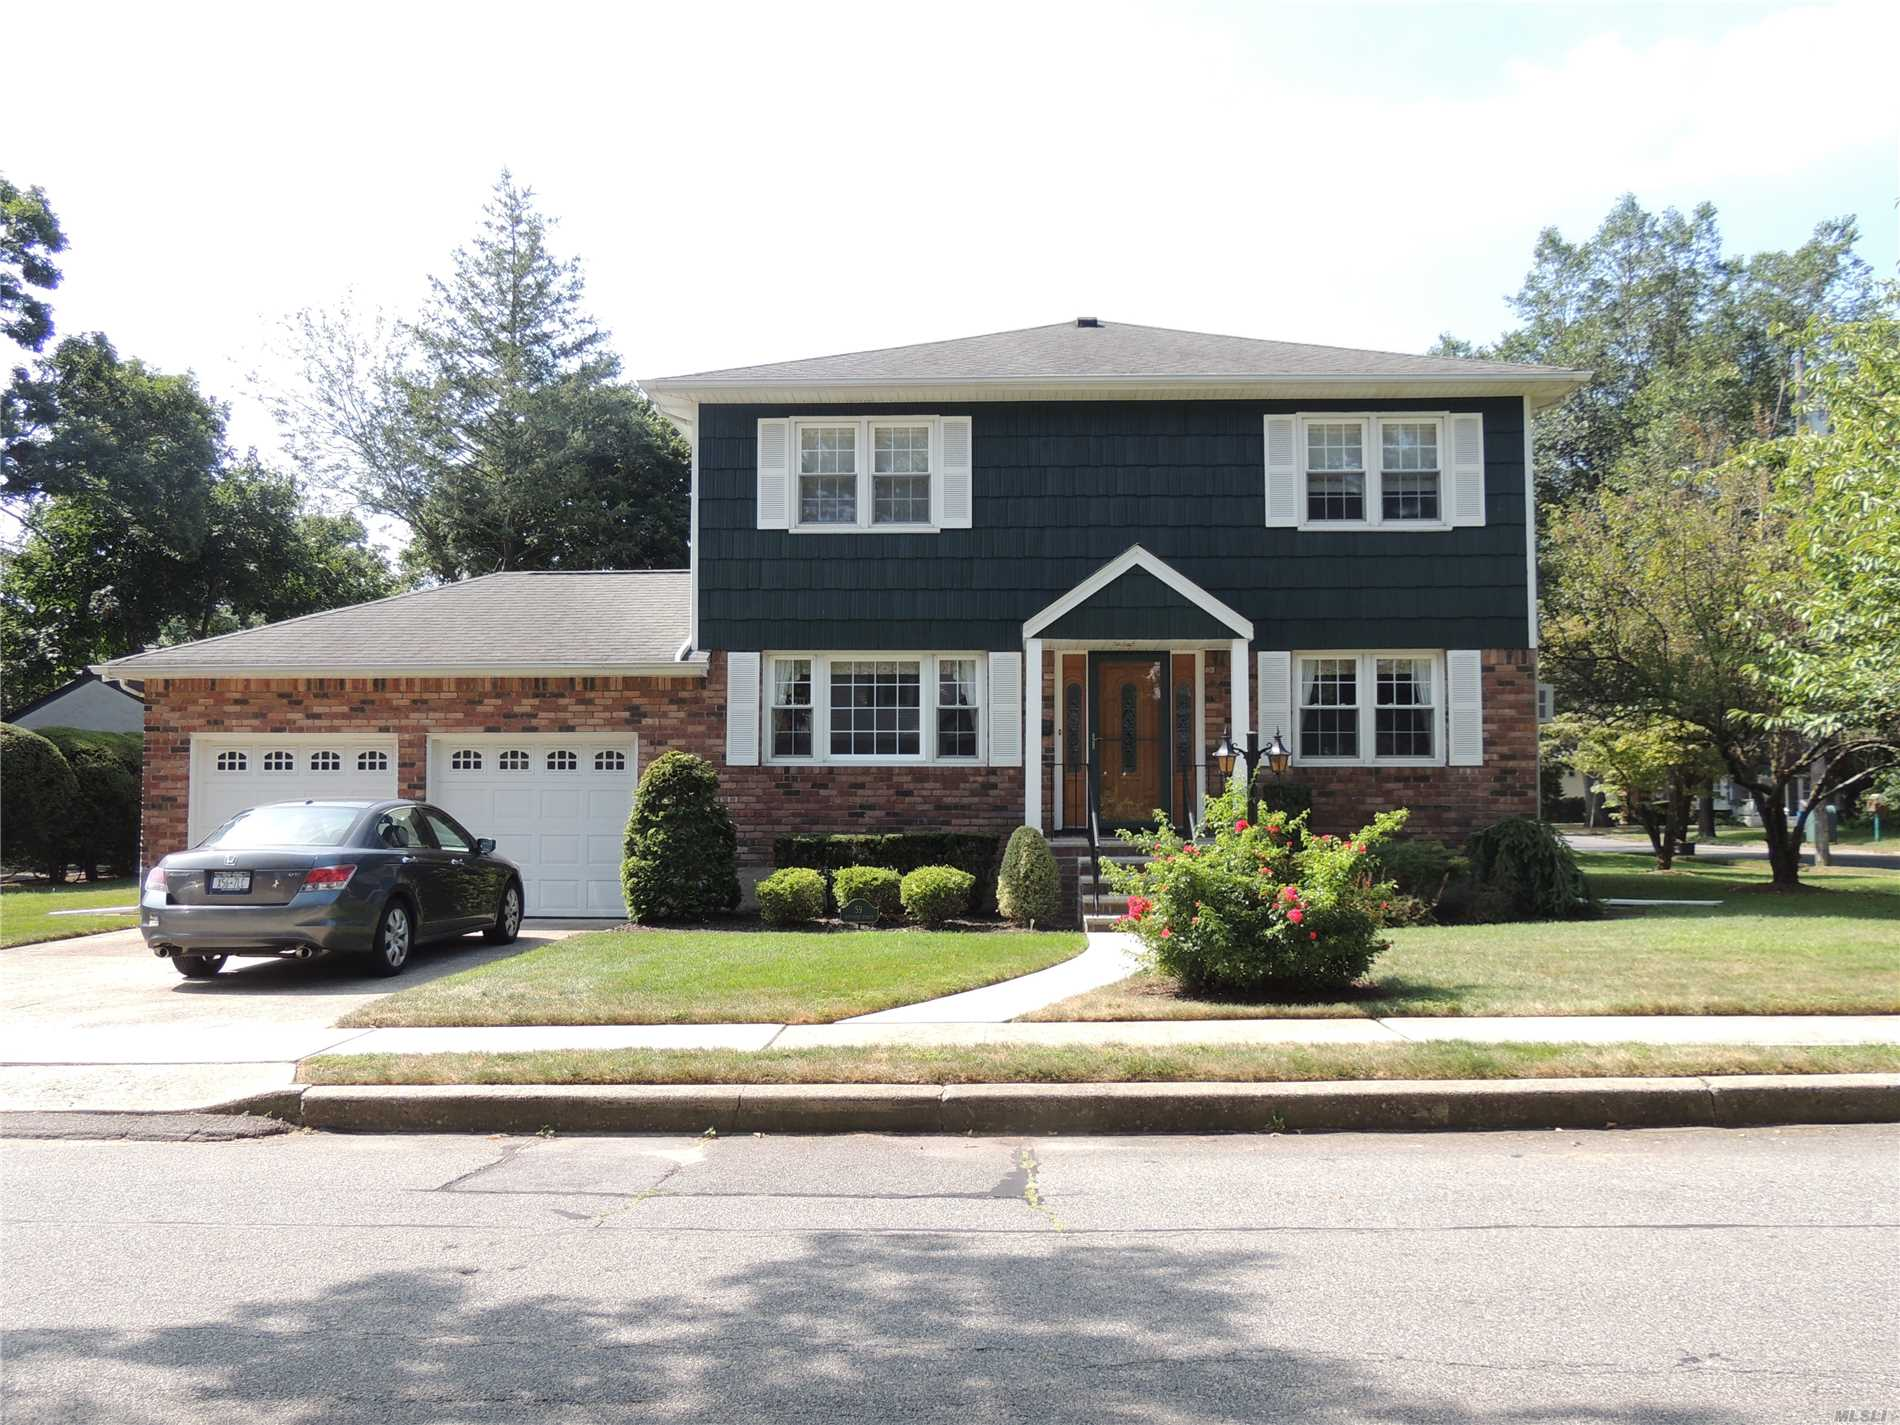 Get Out Your Samsonite Luggage And Start Packing...The Perfect Stately Mint 4 Bedroom..2.5 Bath Center Hall Brick Colonial..New Siding/Front Dr/Gas Heat/Hot Water Htr/New Baths..Custom Wainscotting & Crown Molding..Large Liv Rm..Gleaming Hdwd Flrs..Mastr Bedrm Suite W/New Bth W/Rainshower & Bodyjets..Brand New Marble Bth..Central Vac..Large Bsmt W/Sep Ose..Gas Generator A Bonus..Prof Land W/Igs..Successful Grievance Will Take Effect 10/18..31.64% Reduction..Approx Savings $4500.00..Close To Park